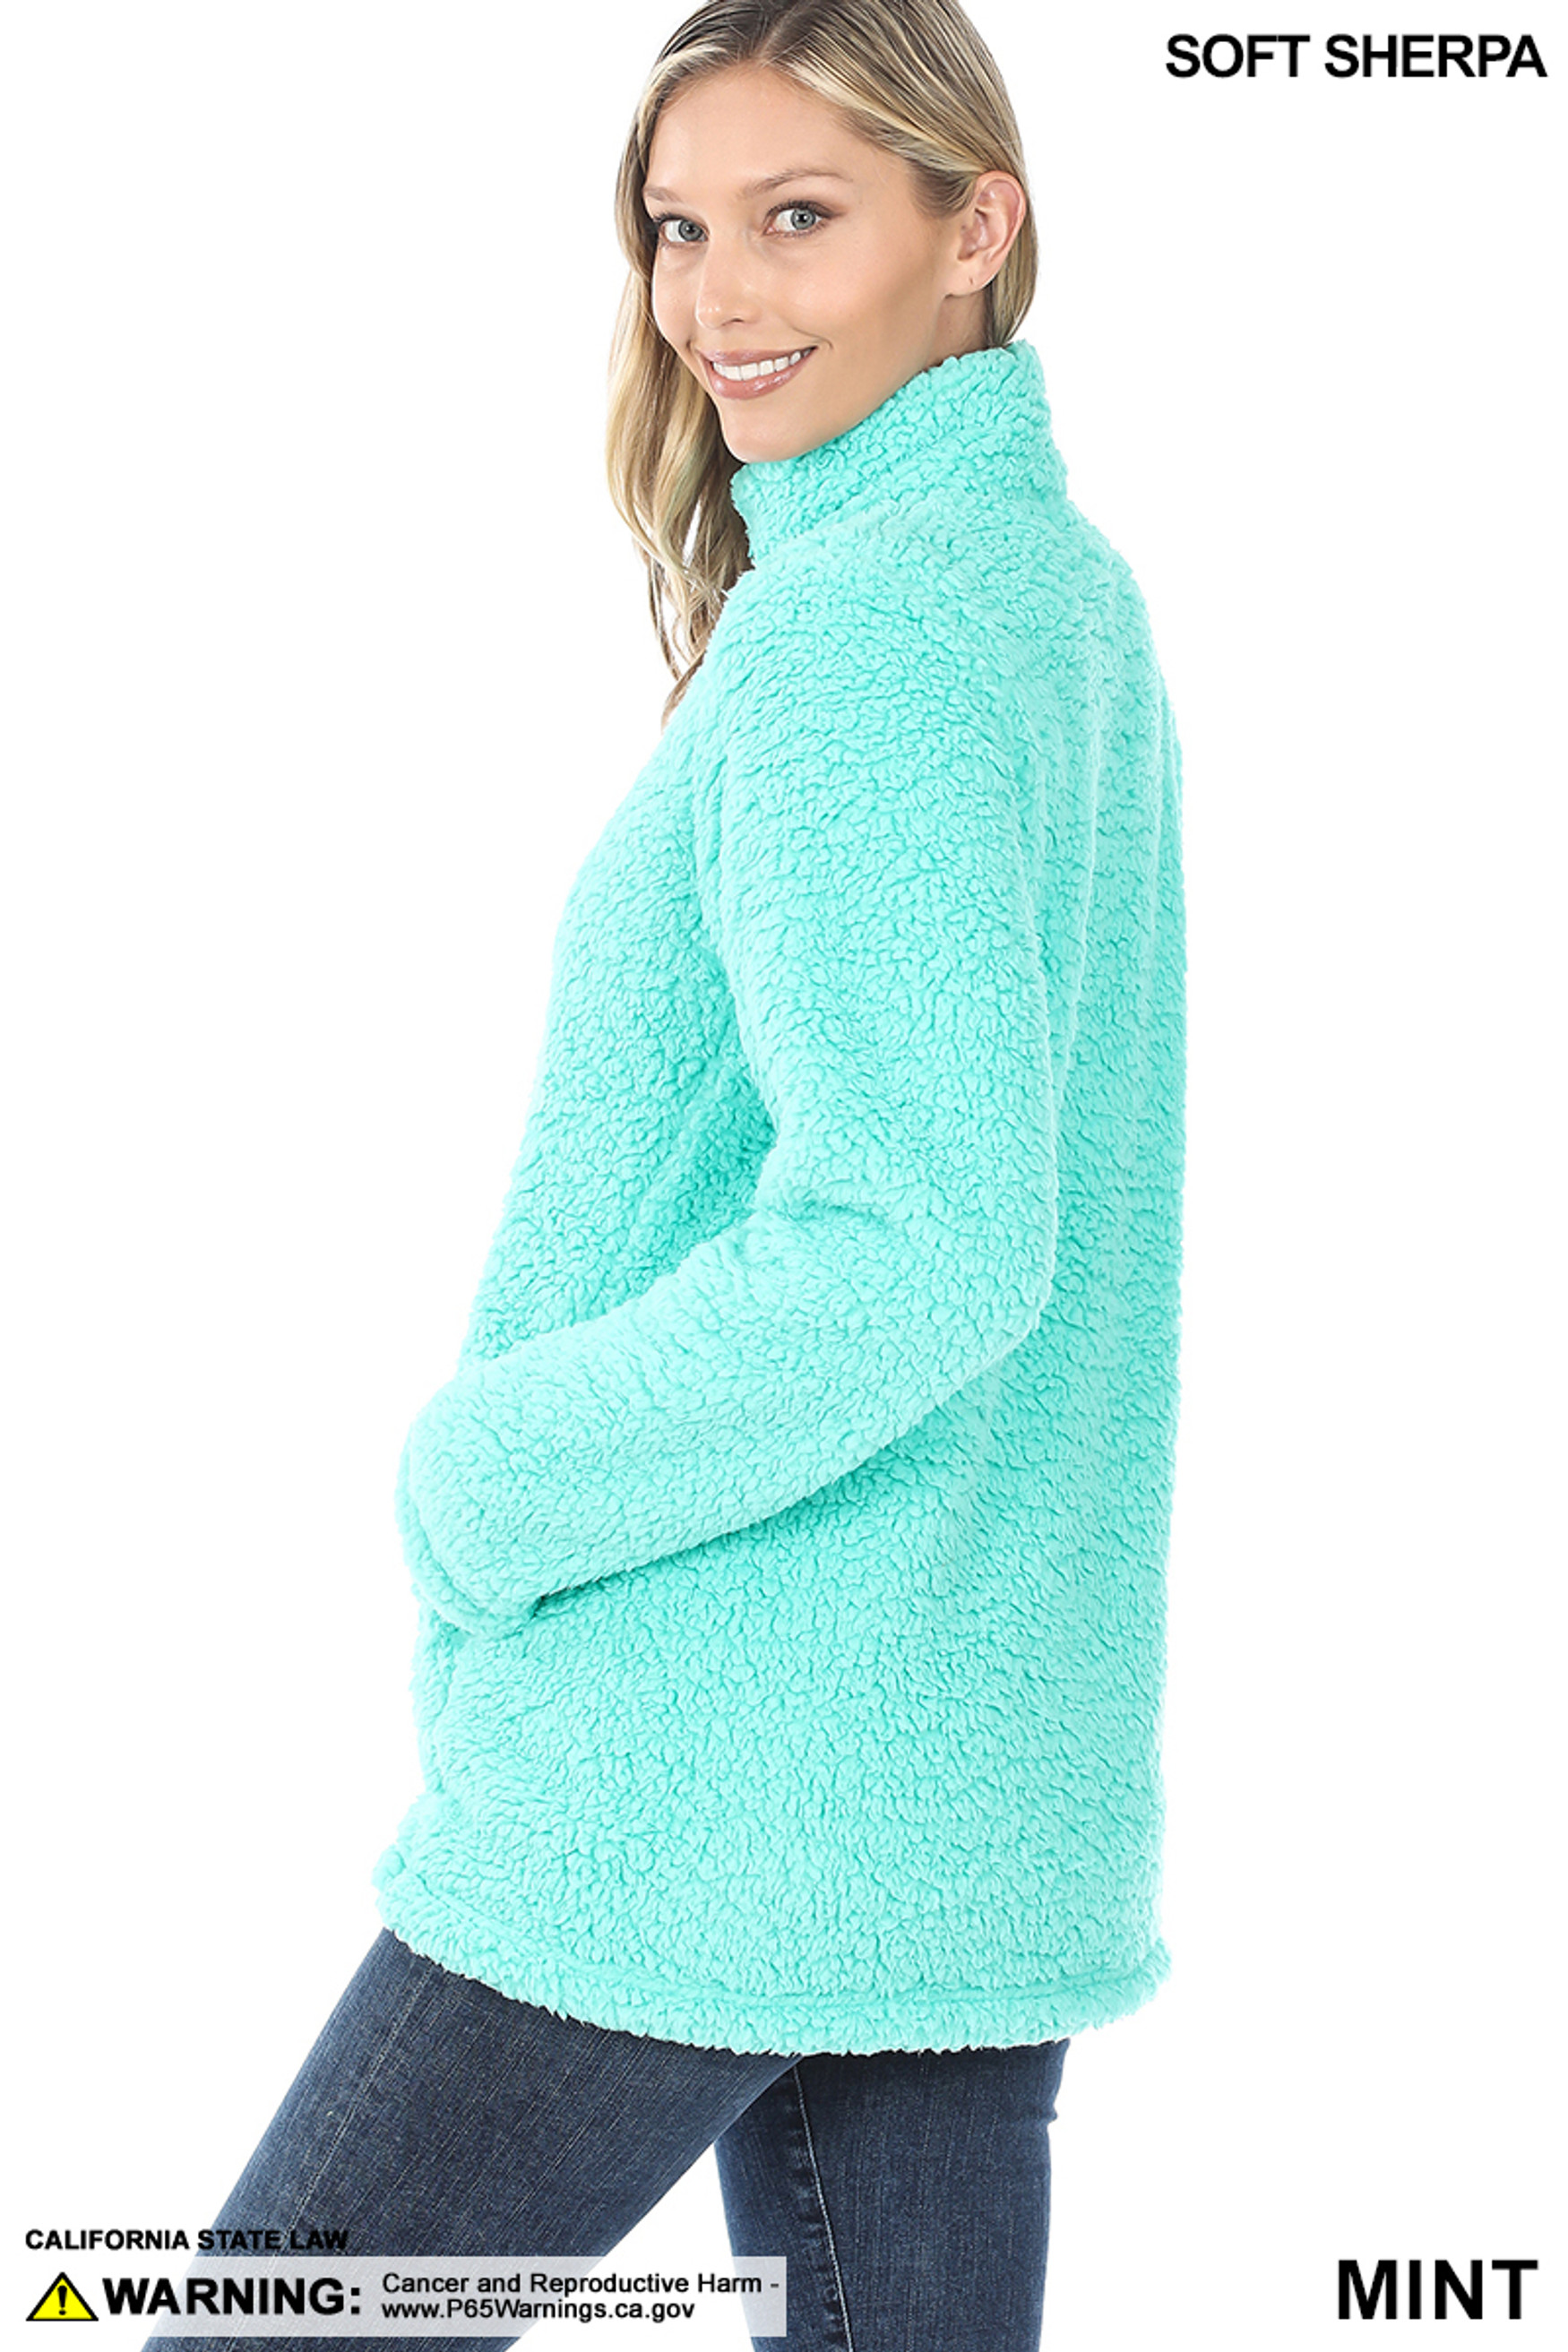 Left side image of Mint Sherpa Zip Up Jacket with Side Pockets